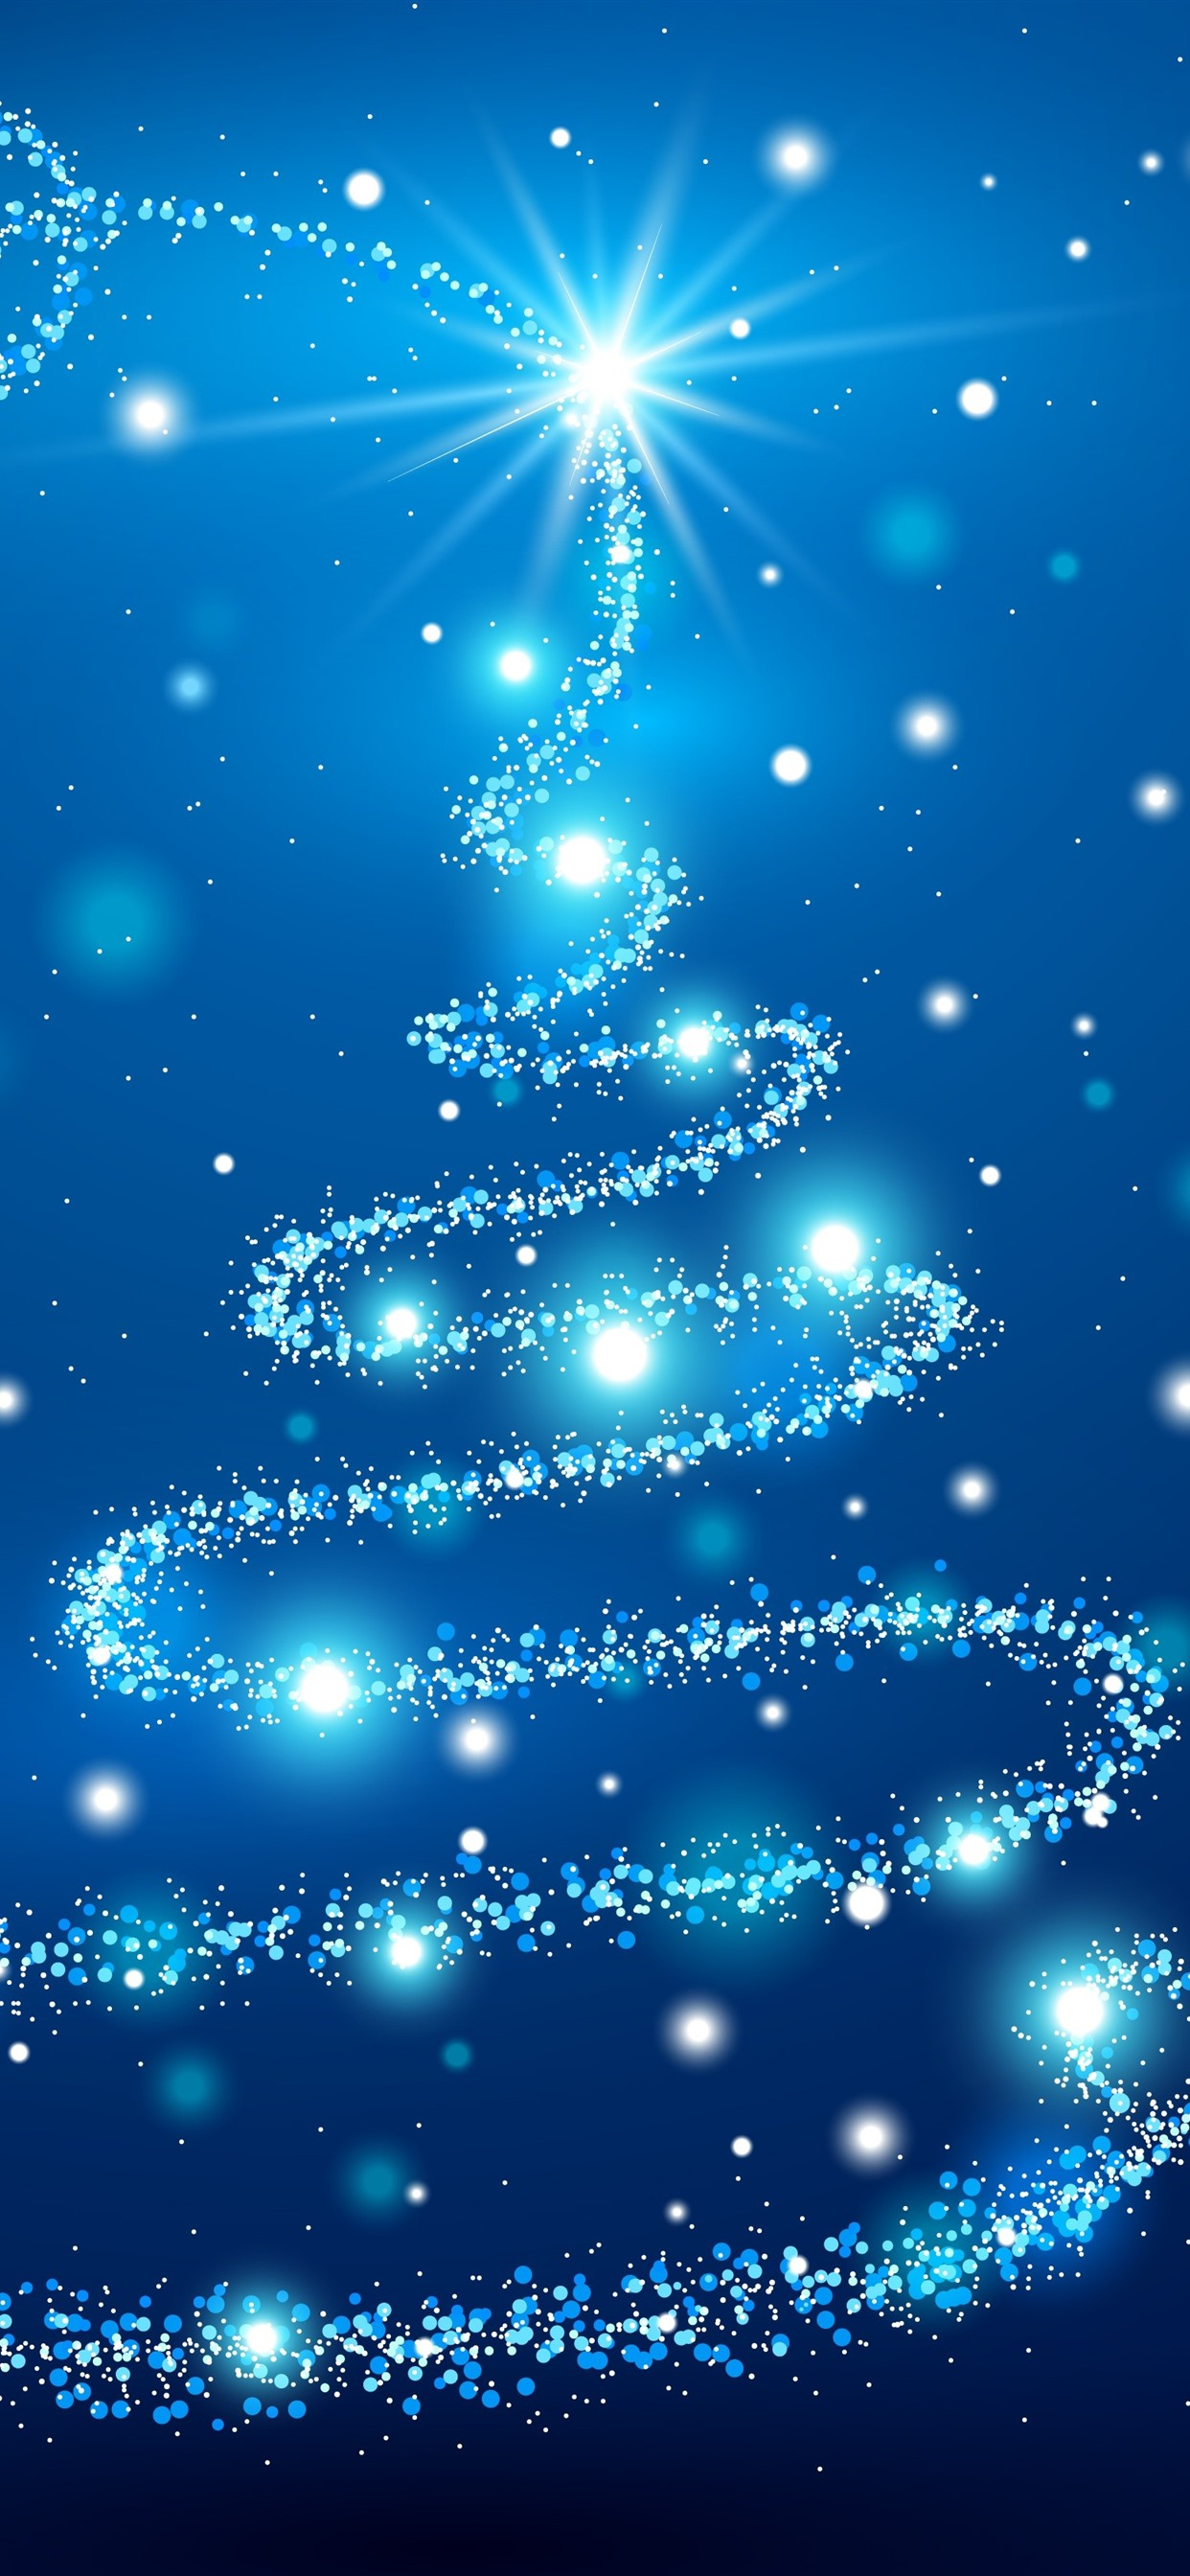 Blue Christmas Tree Shine Stars 1242x2688 Iphone 11 Pro Xs Max Wallpaper Background Picture Image